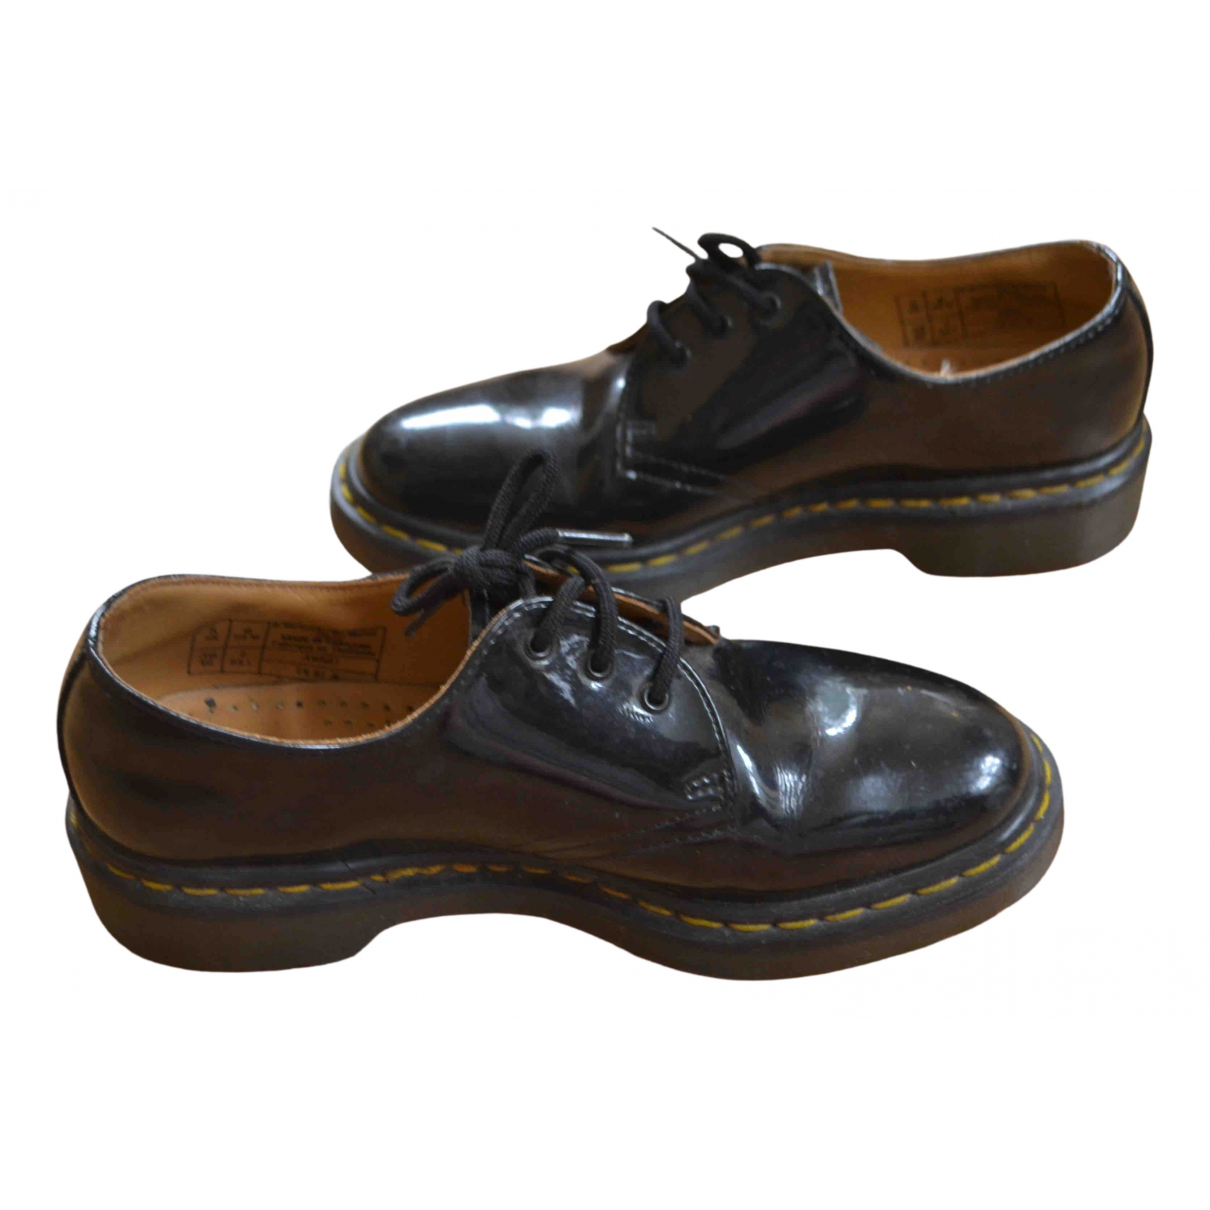 Dr. Martens N Black Patent leather Lace ups for Women 5 UK